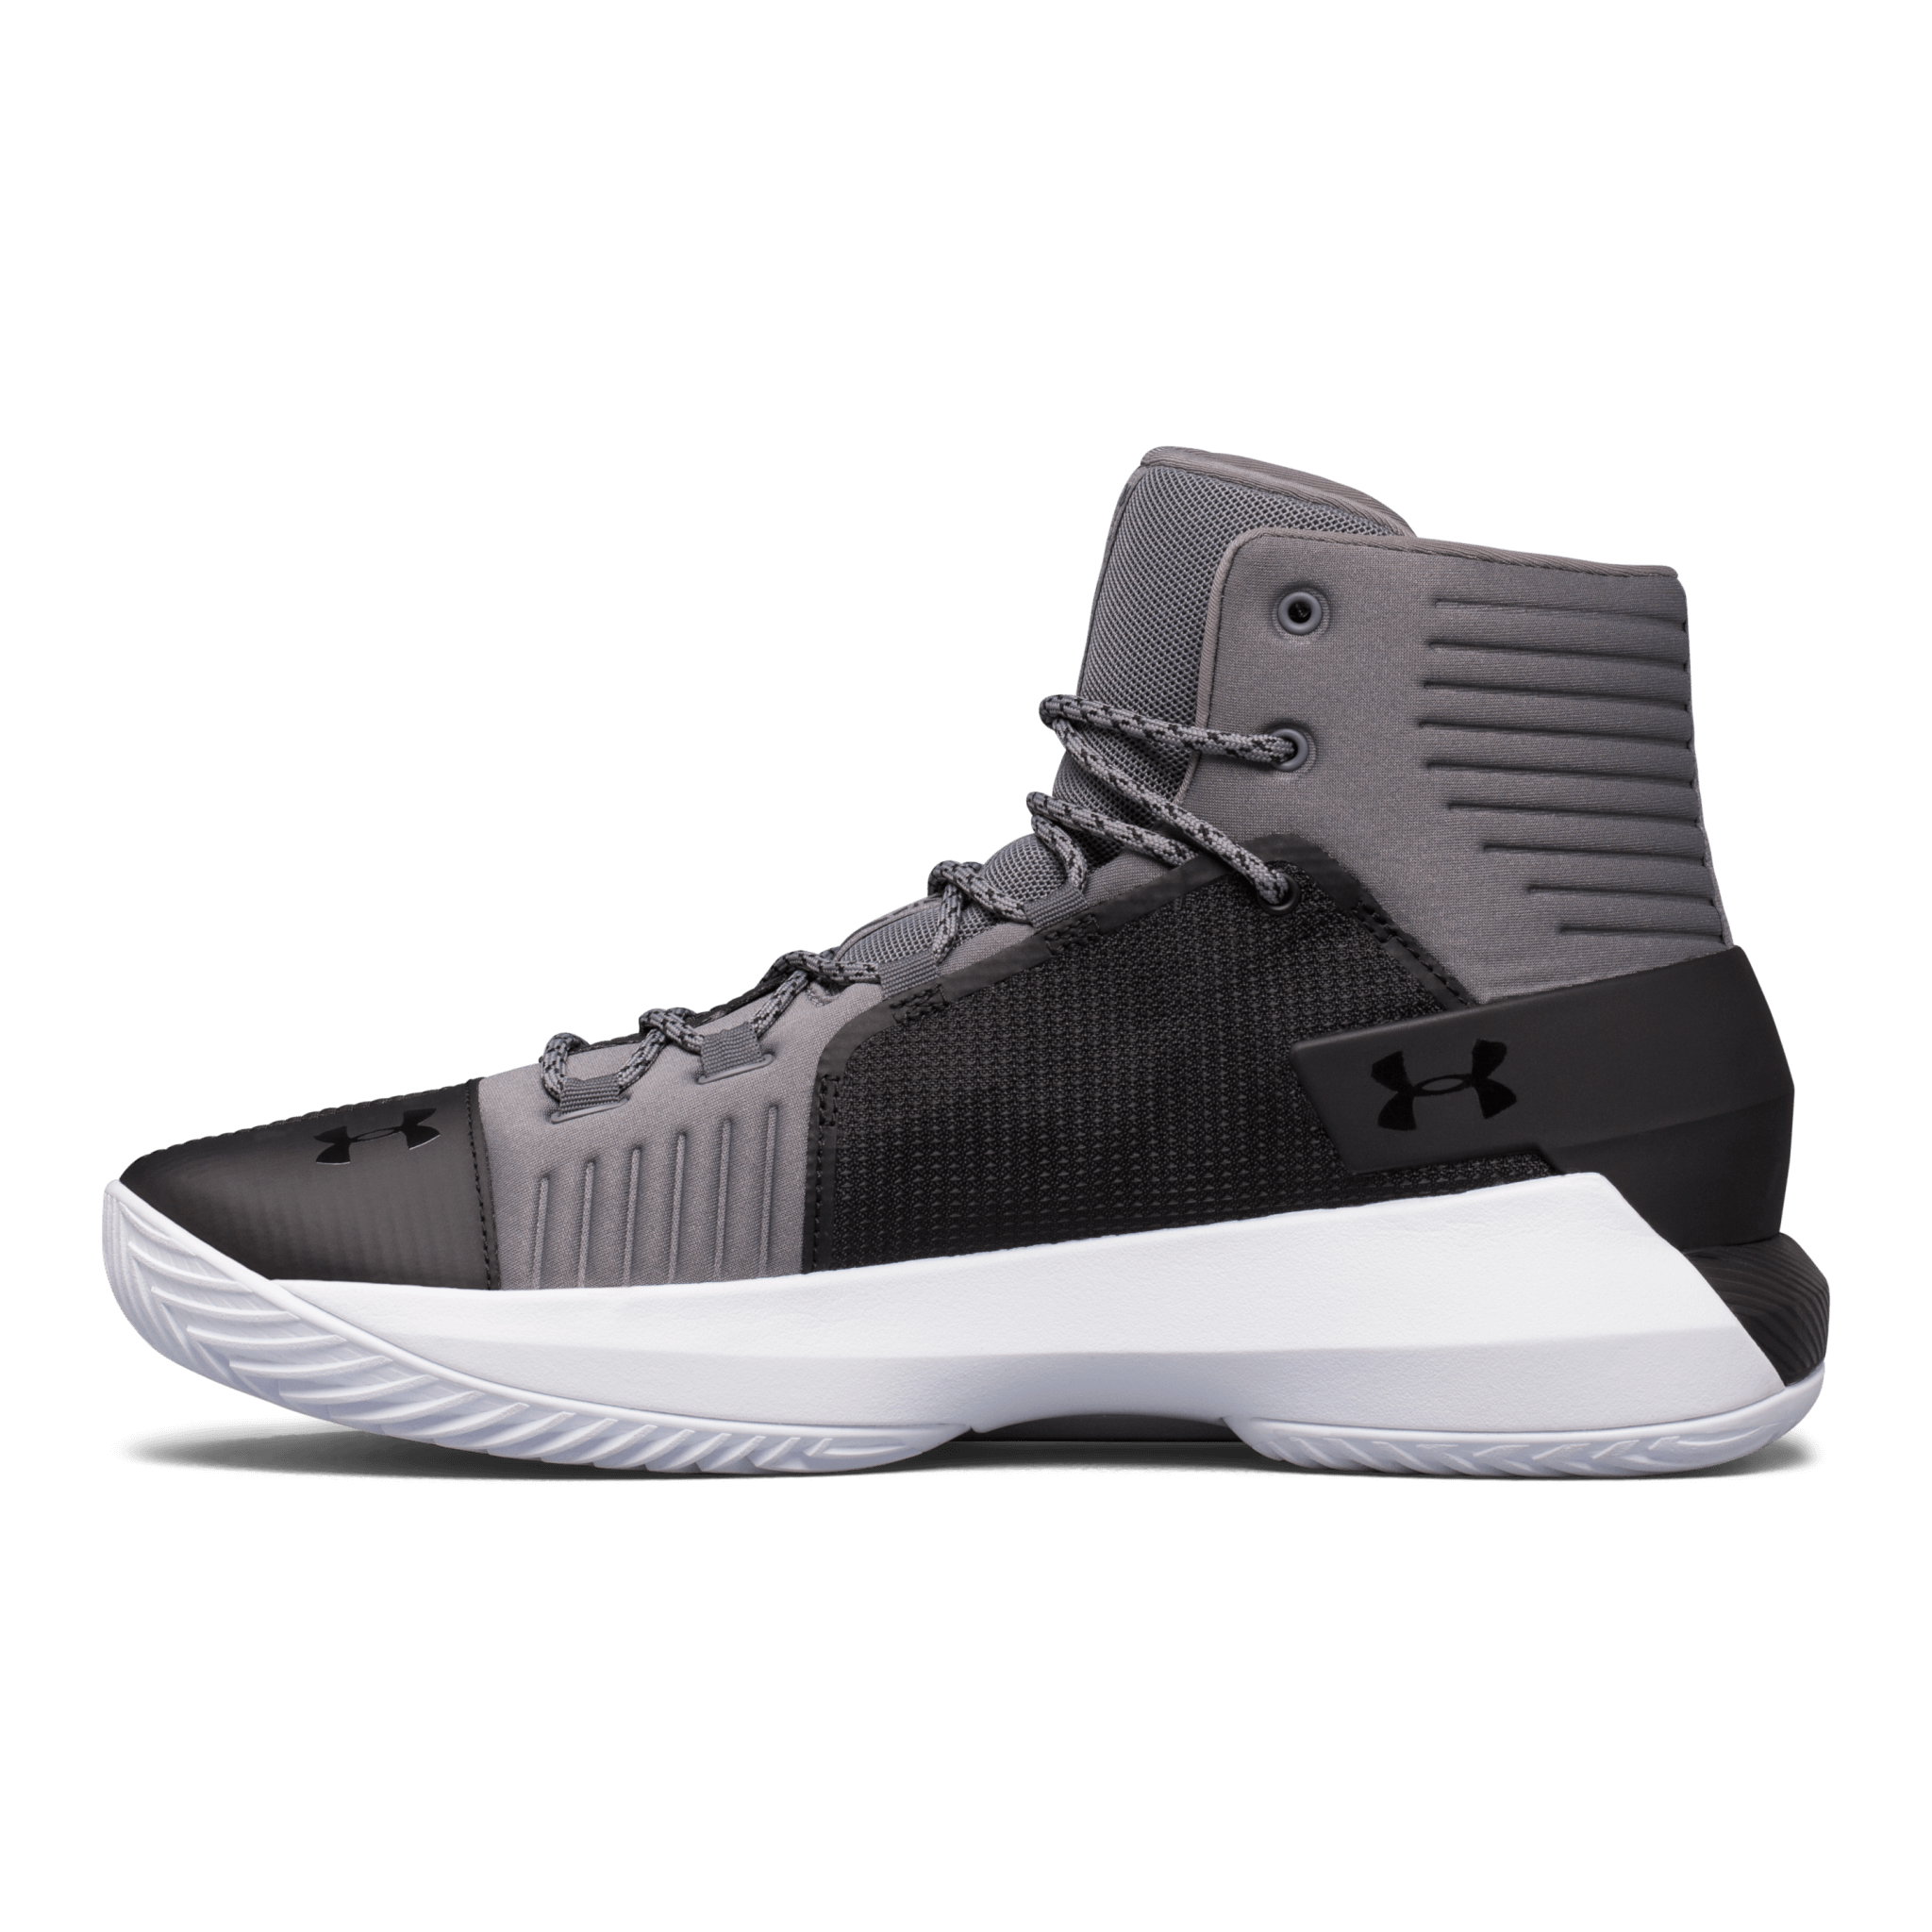 12bdf4d5514 Under Armour Drive 4 Performance Review